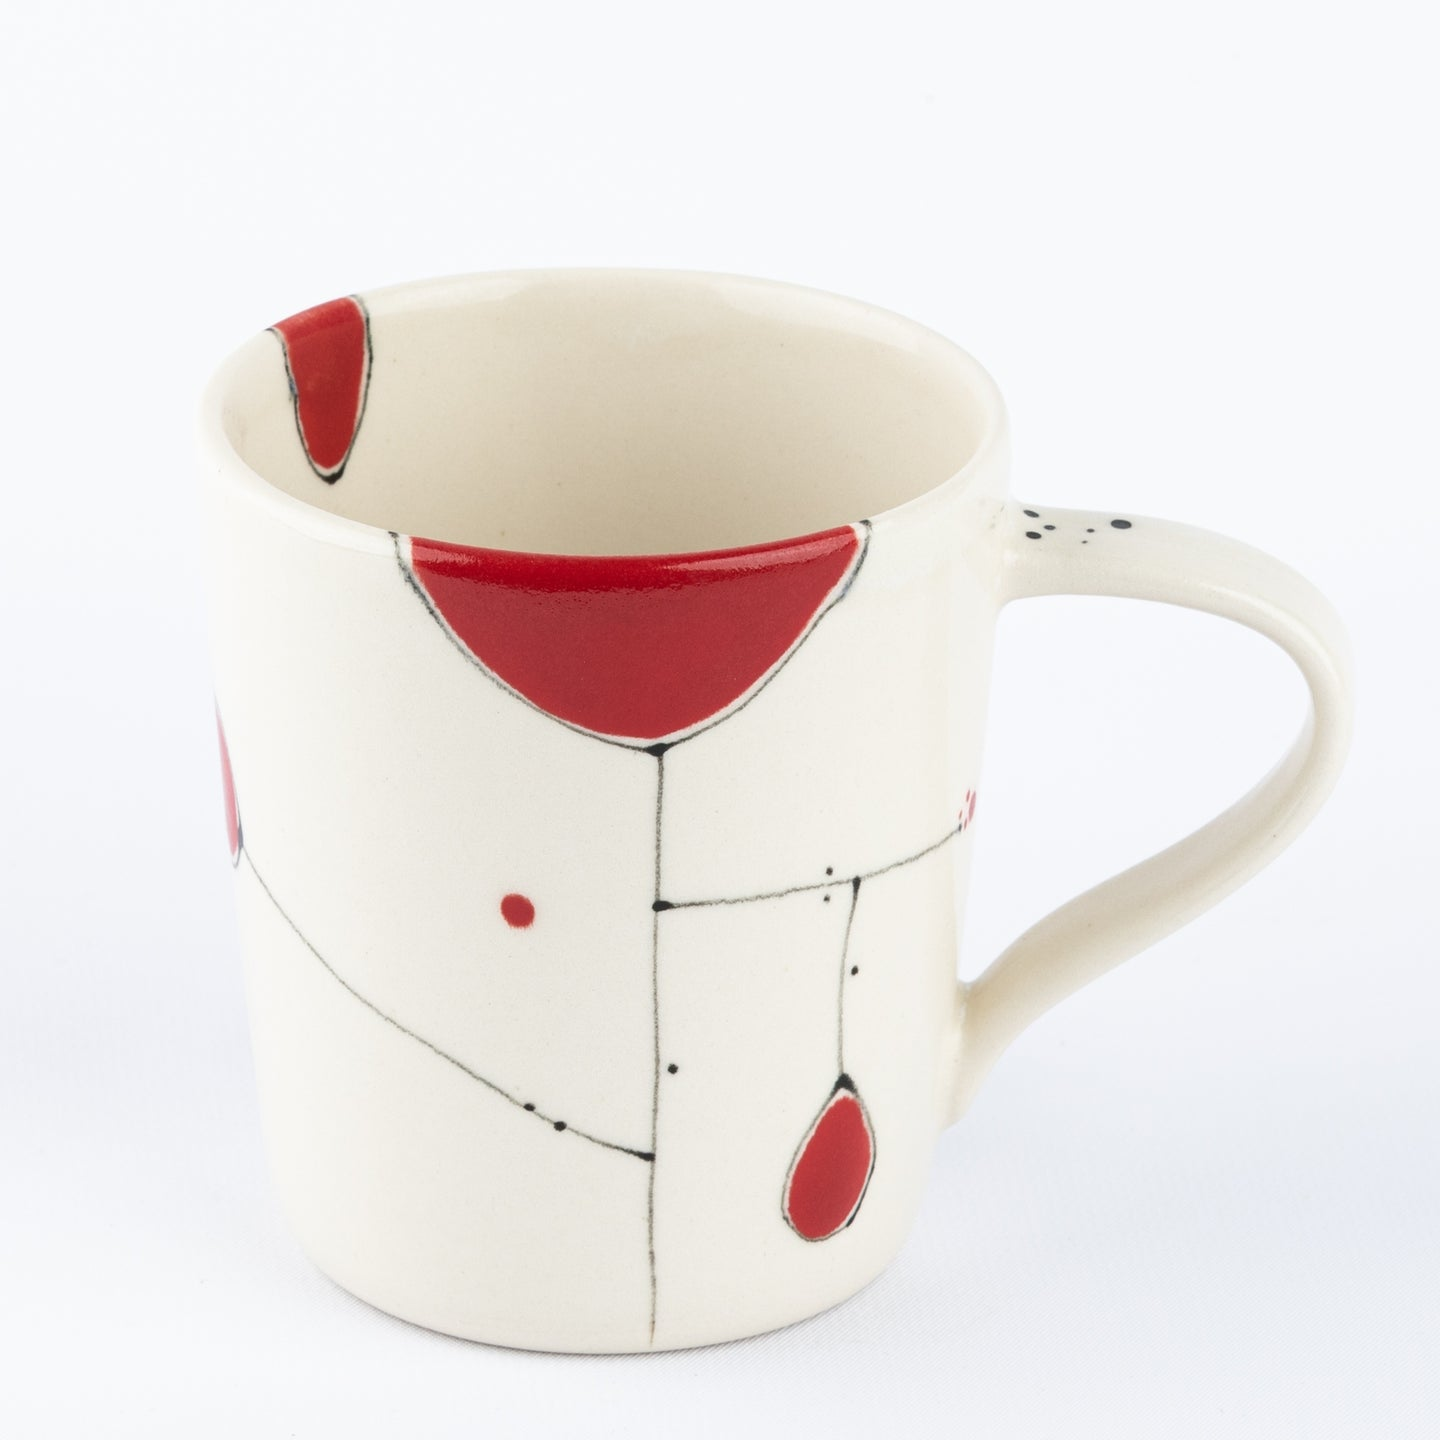 EZME Designs: (S) Small Red Mug